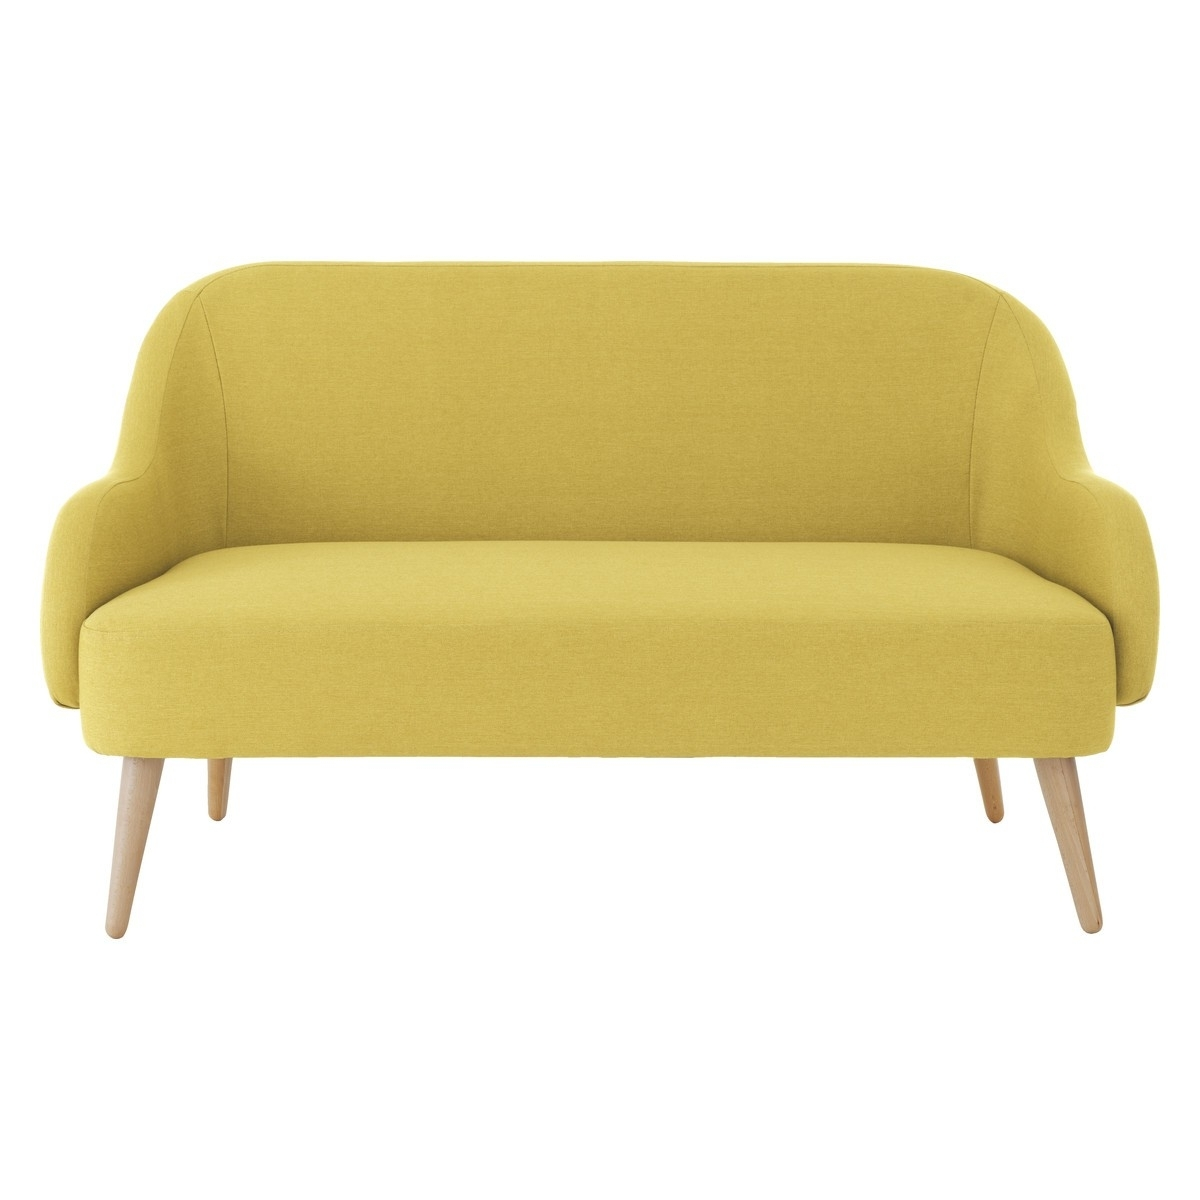 Yellow Fabric, Sofa Inside Popular Small 2 Seater Sofas (Gallery 4 of 20)